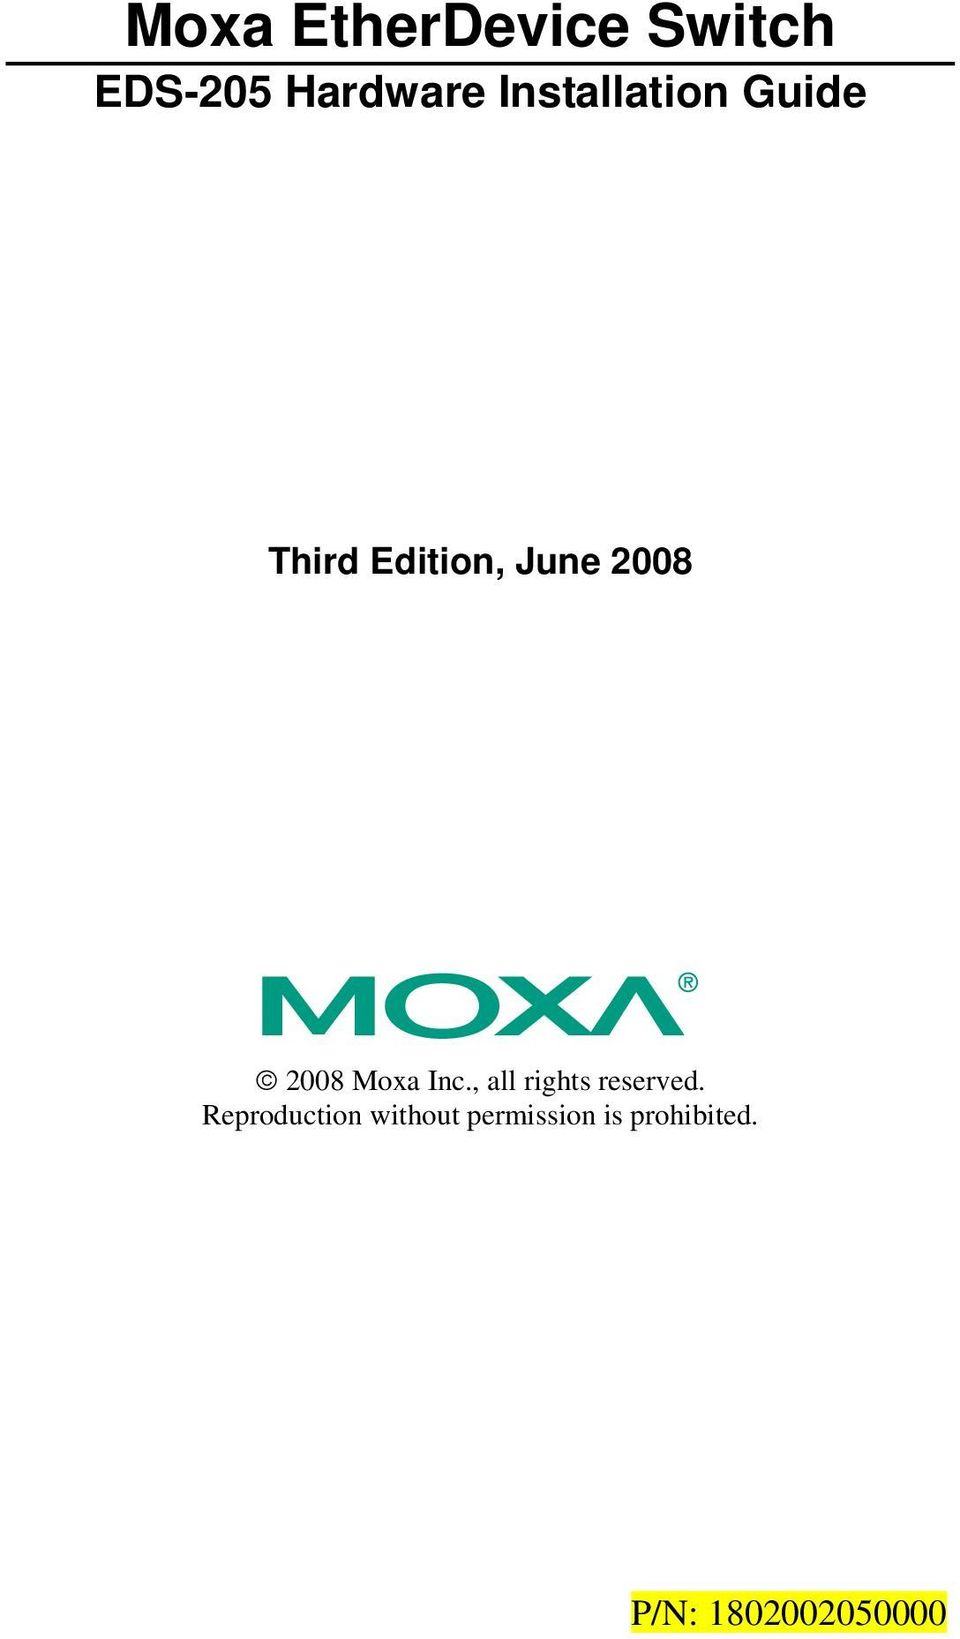 2008 Moxa Inc., all rights reserved.